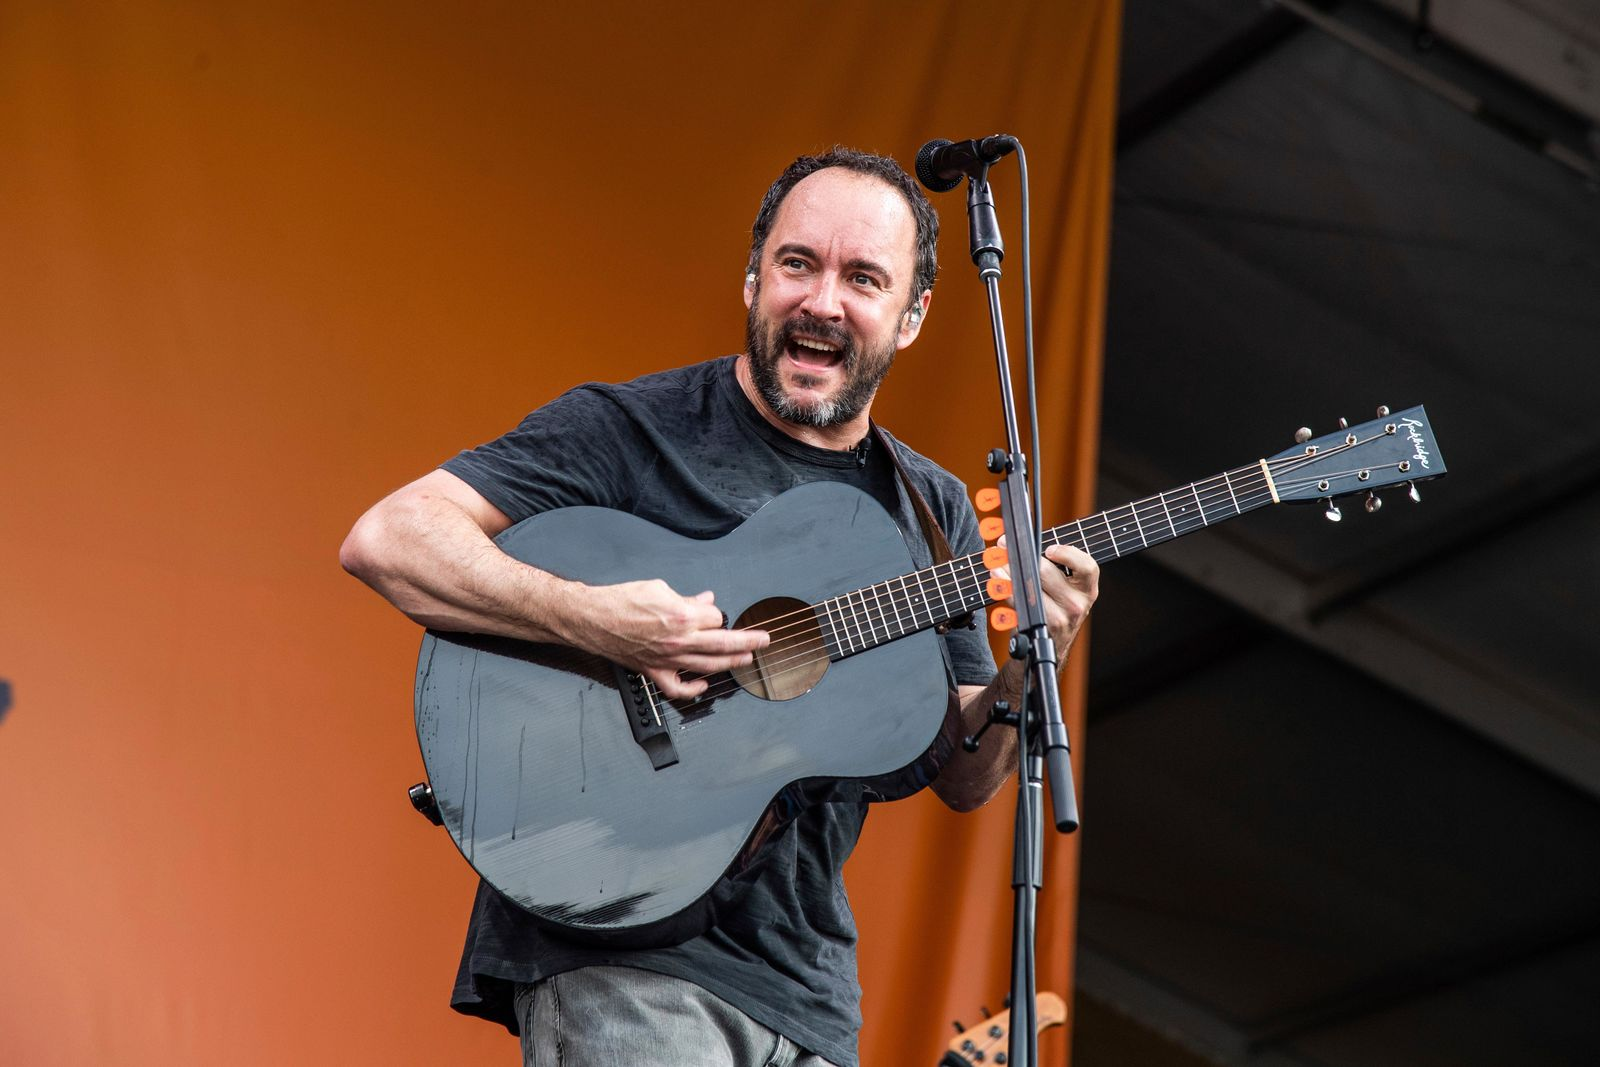 FILE - This May 4, 2019 file photo shows Dave Matthews of the Dave Matthews Band performing at the New Orleans Jazz and Heritage Festival in New Orleans.  The Dave Matthews Band are among the 16 acts nominated for the Rock and Roll Hall of Fame's 2020 class. (Photo by Amy Harris/Invision/AP, File)